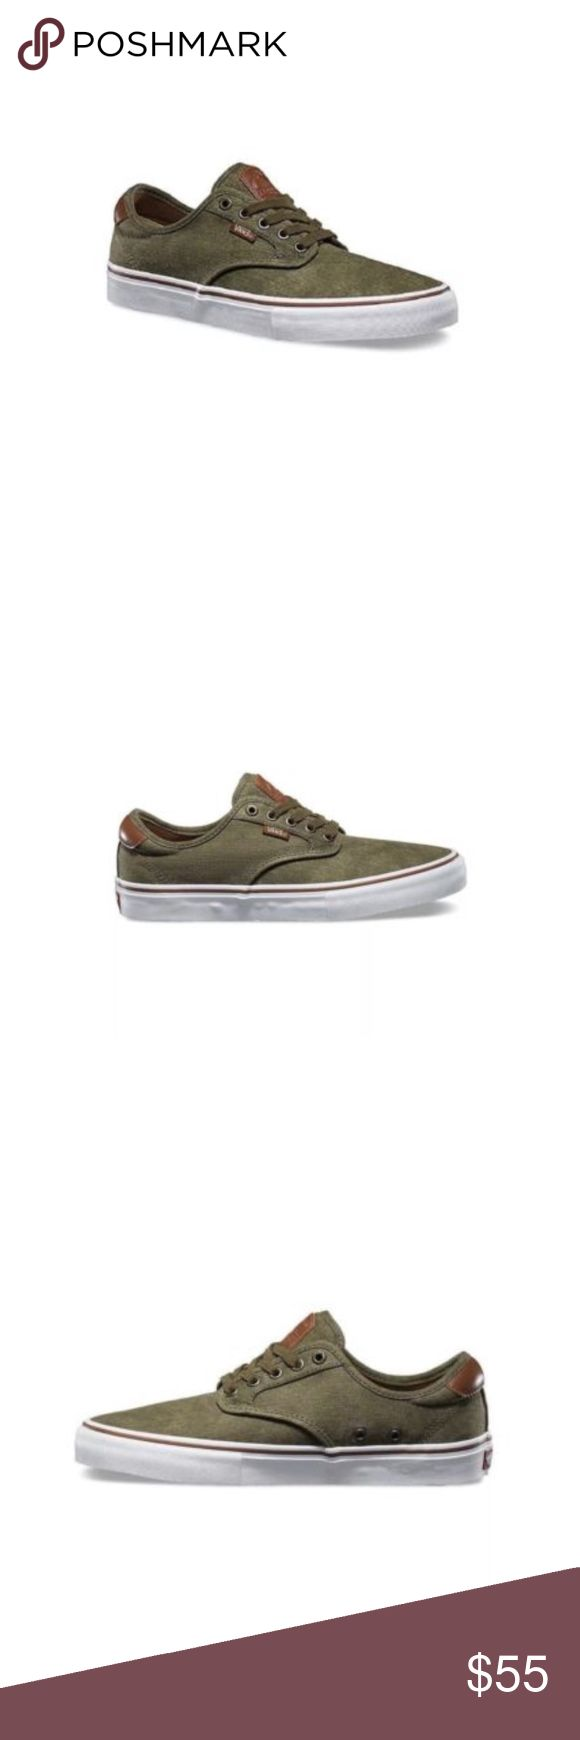 Vans Chima Ferguson Pro Twill Olive Green Shoes Vans Chima Ferguson Pro Twill Olive Green with Ultracush  Size Men 10.5 Brand new in box Box is ripped and has been taped no damage to shoes Vans Shoes Athletic Shoes